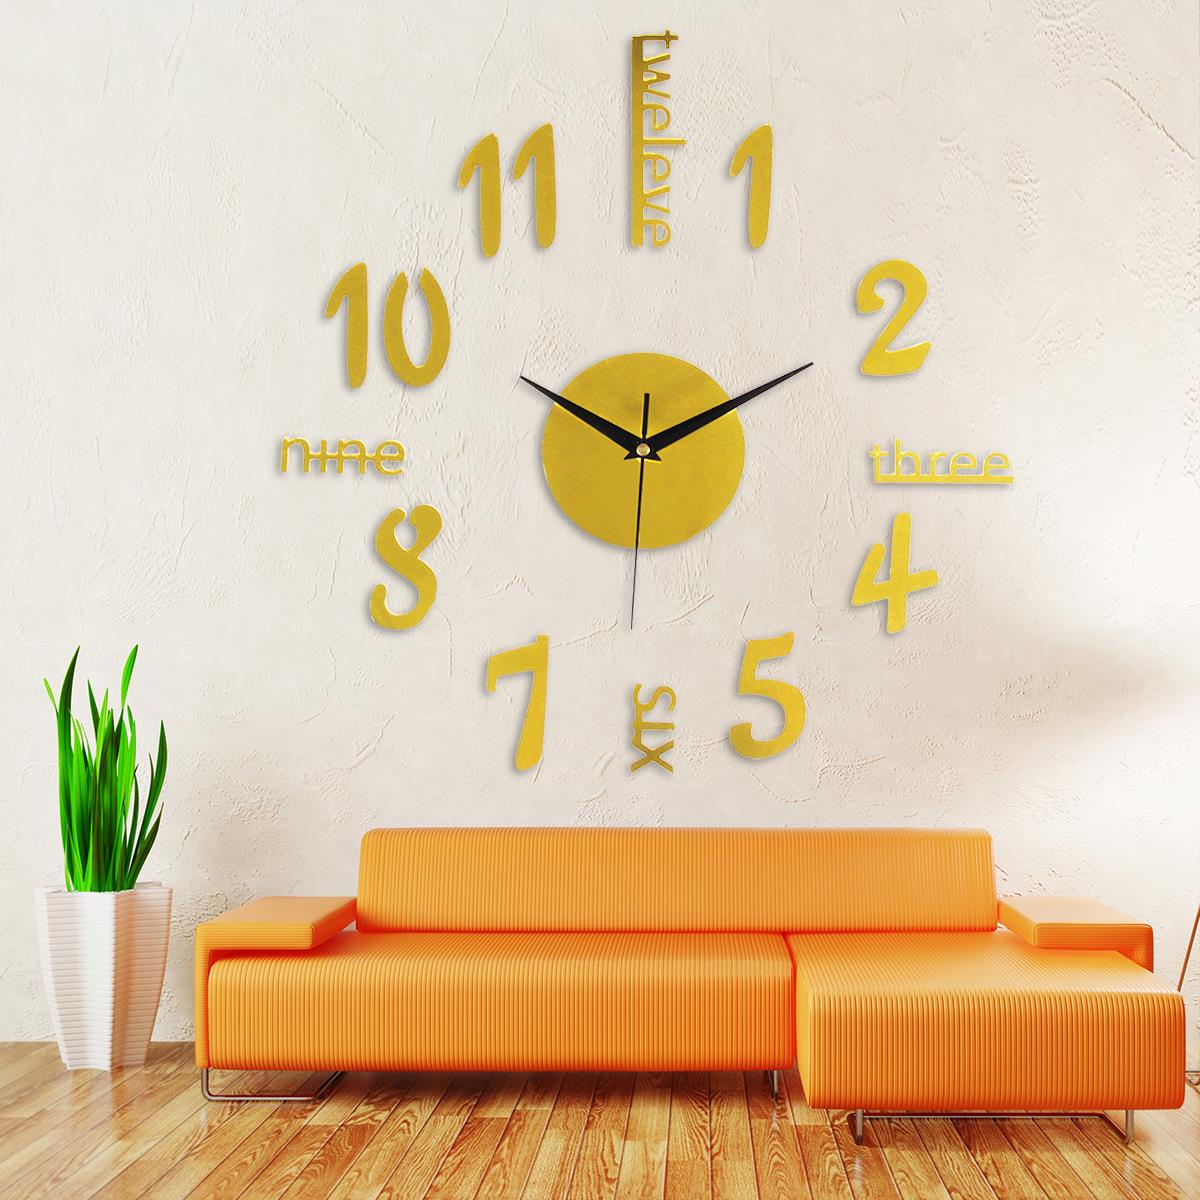 Large Silver Letters For Walls 3D Acrylic Wall Clock Sticker Surface Large Number Letters Diy